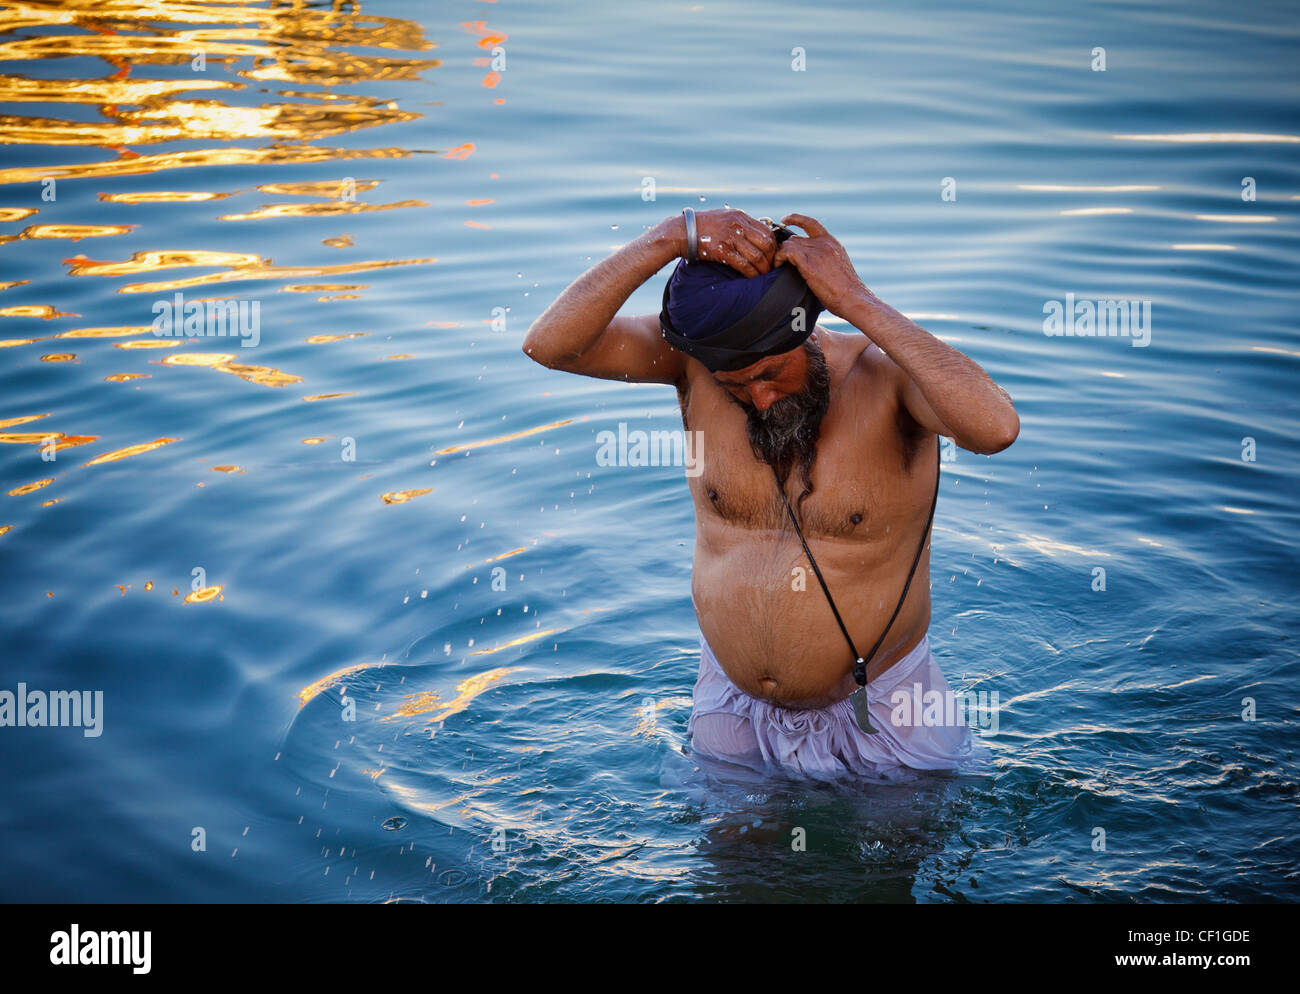 A Sikh man takes a bath in Amrit Sarovar, the pool surrounding the Golden Temple of Amritsar, Punjab, India - Stock Image